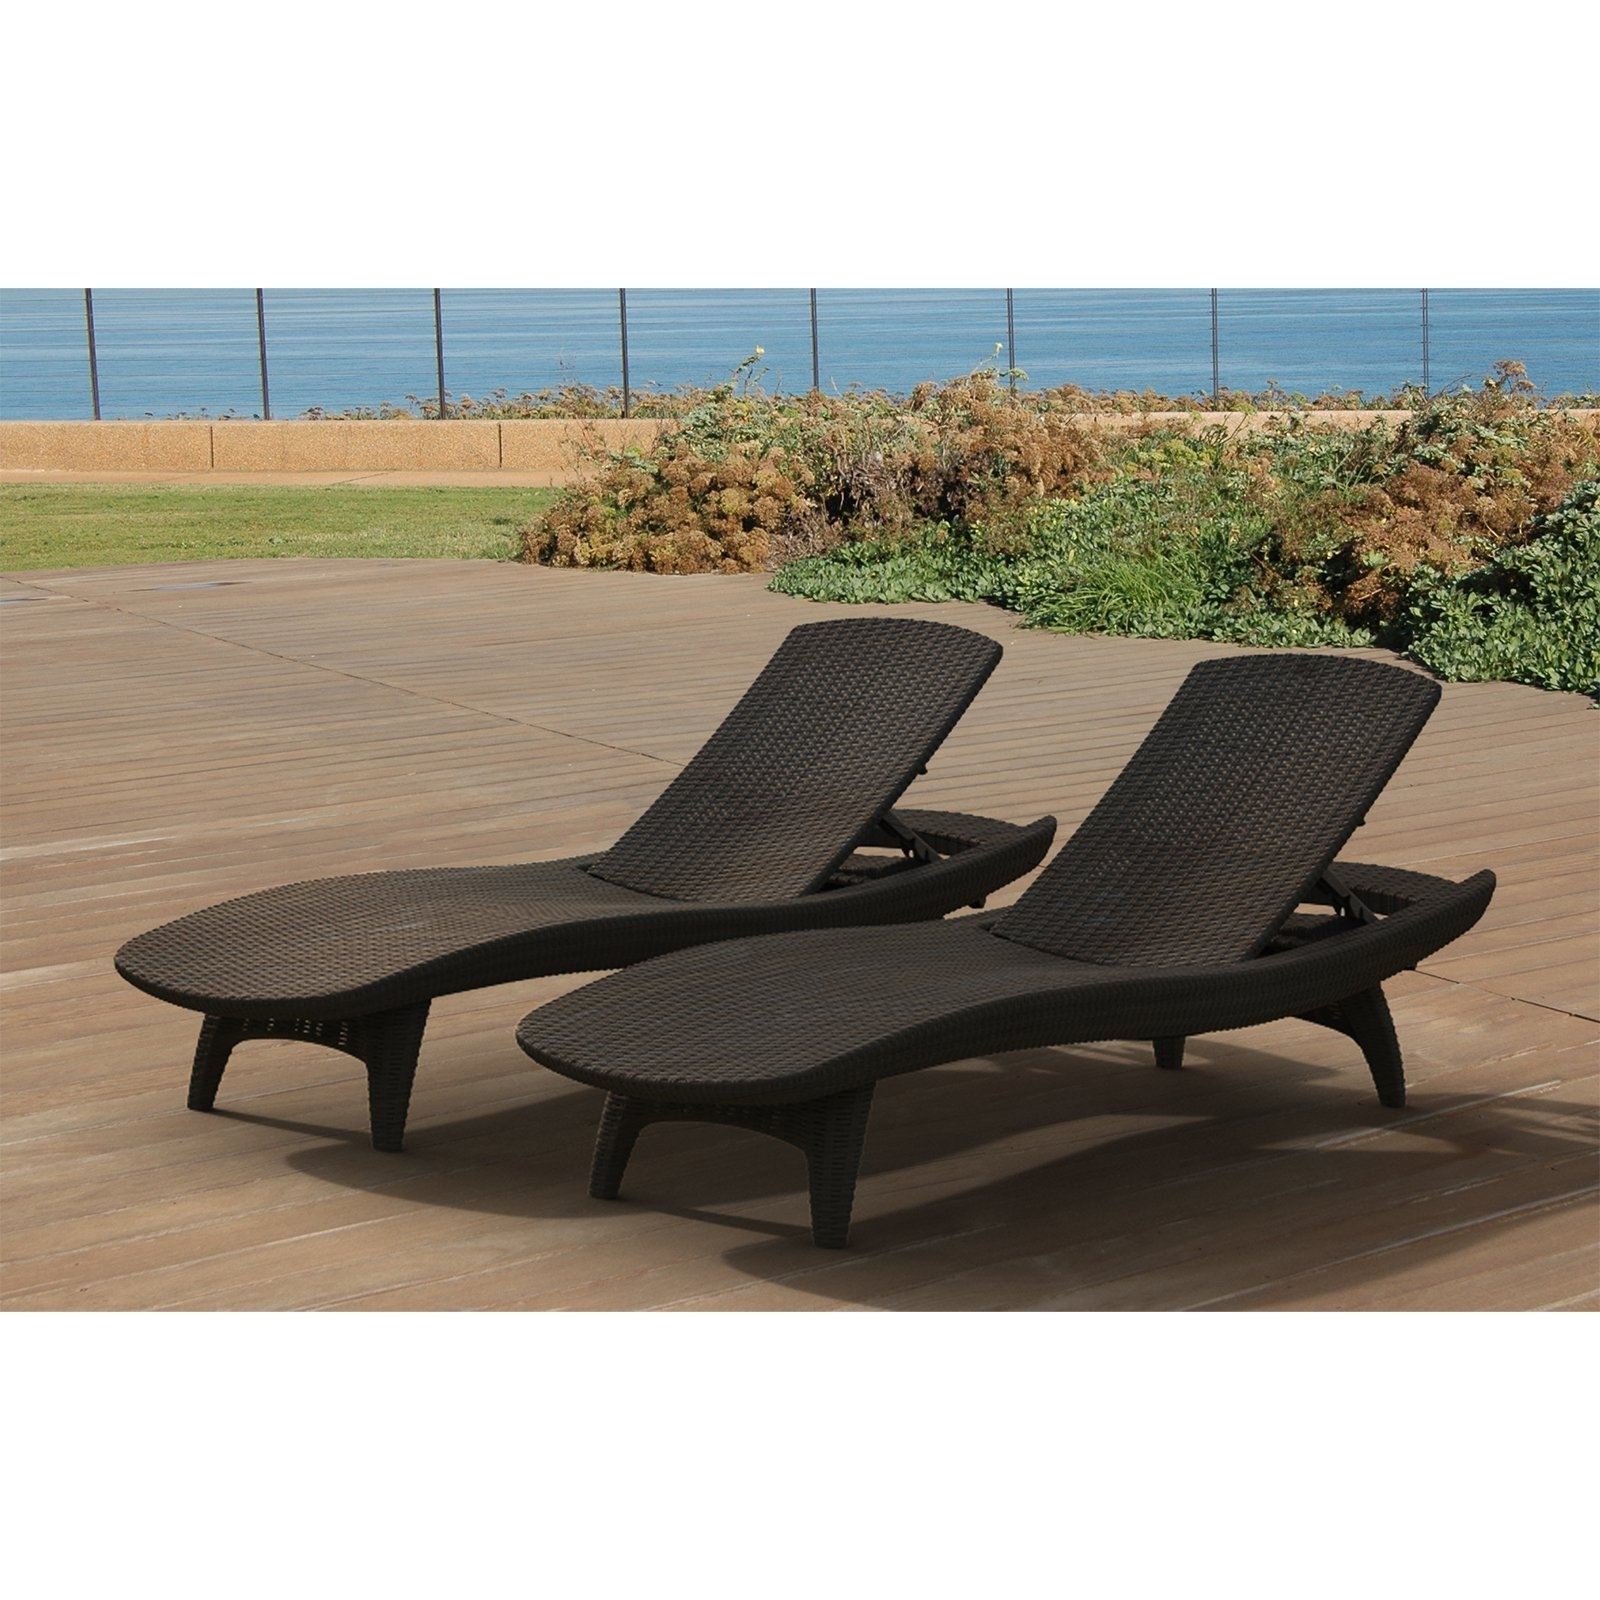 Interesting Kids Outdoor Pool Canopy Chaise Lounge Decoration ~ Effmu Within Most Recently Released Exotic Chaise Lounge Chairs (Gallery 8 of 15)